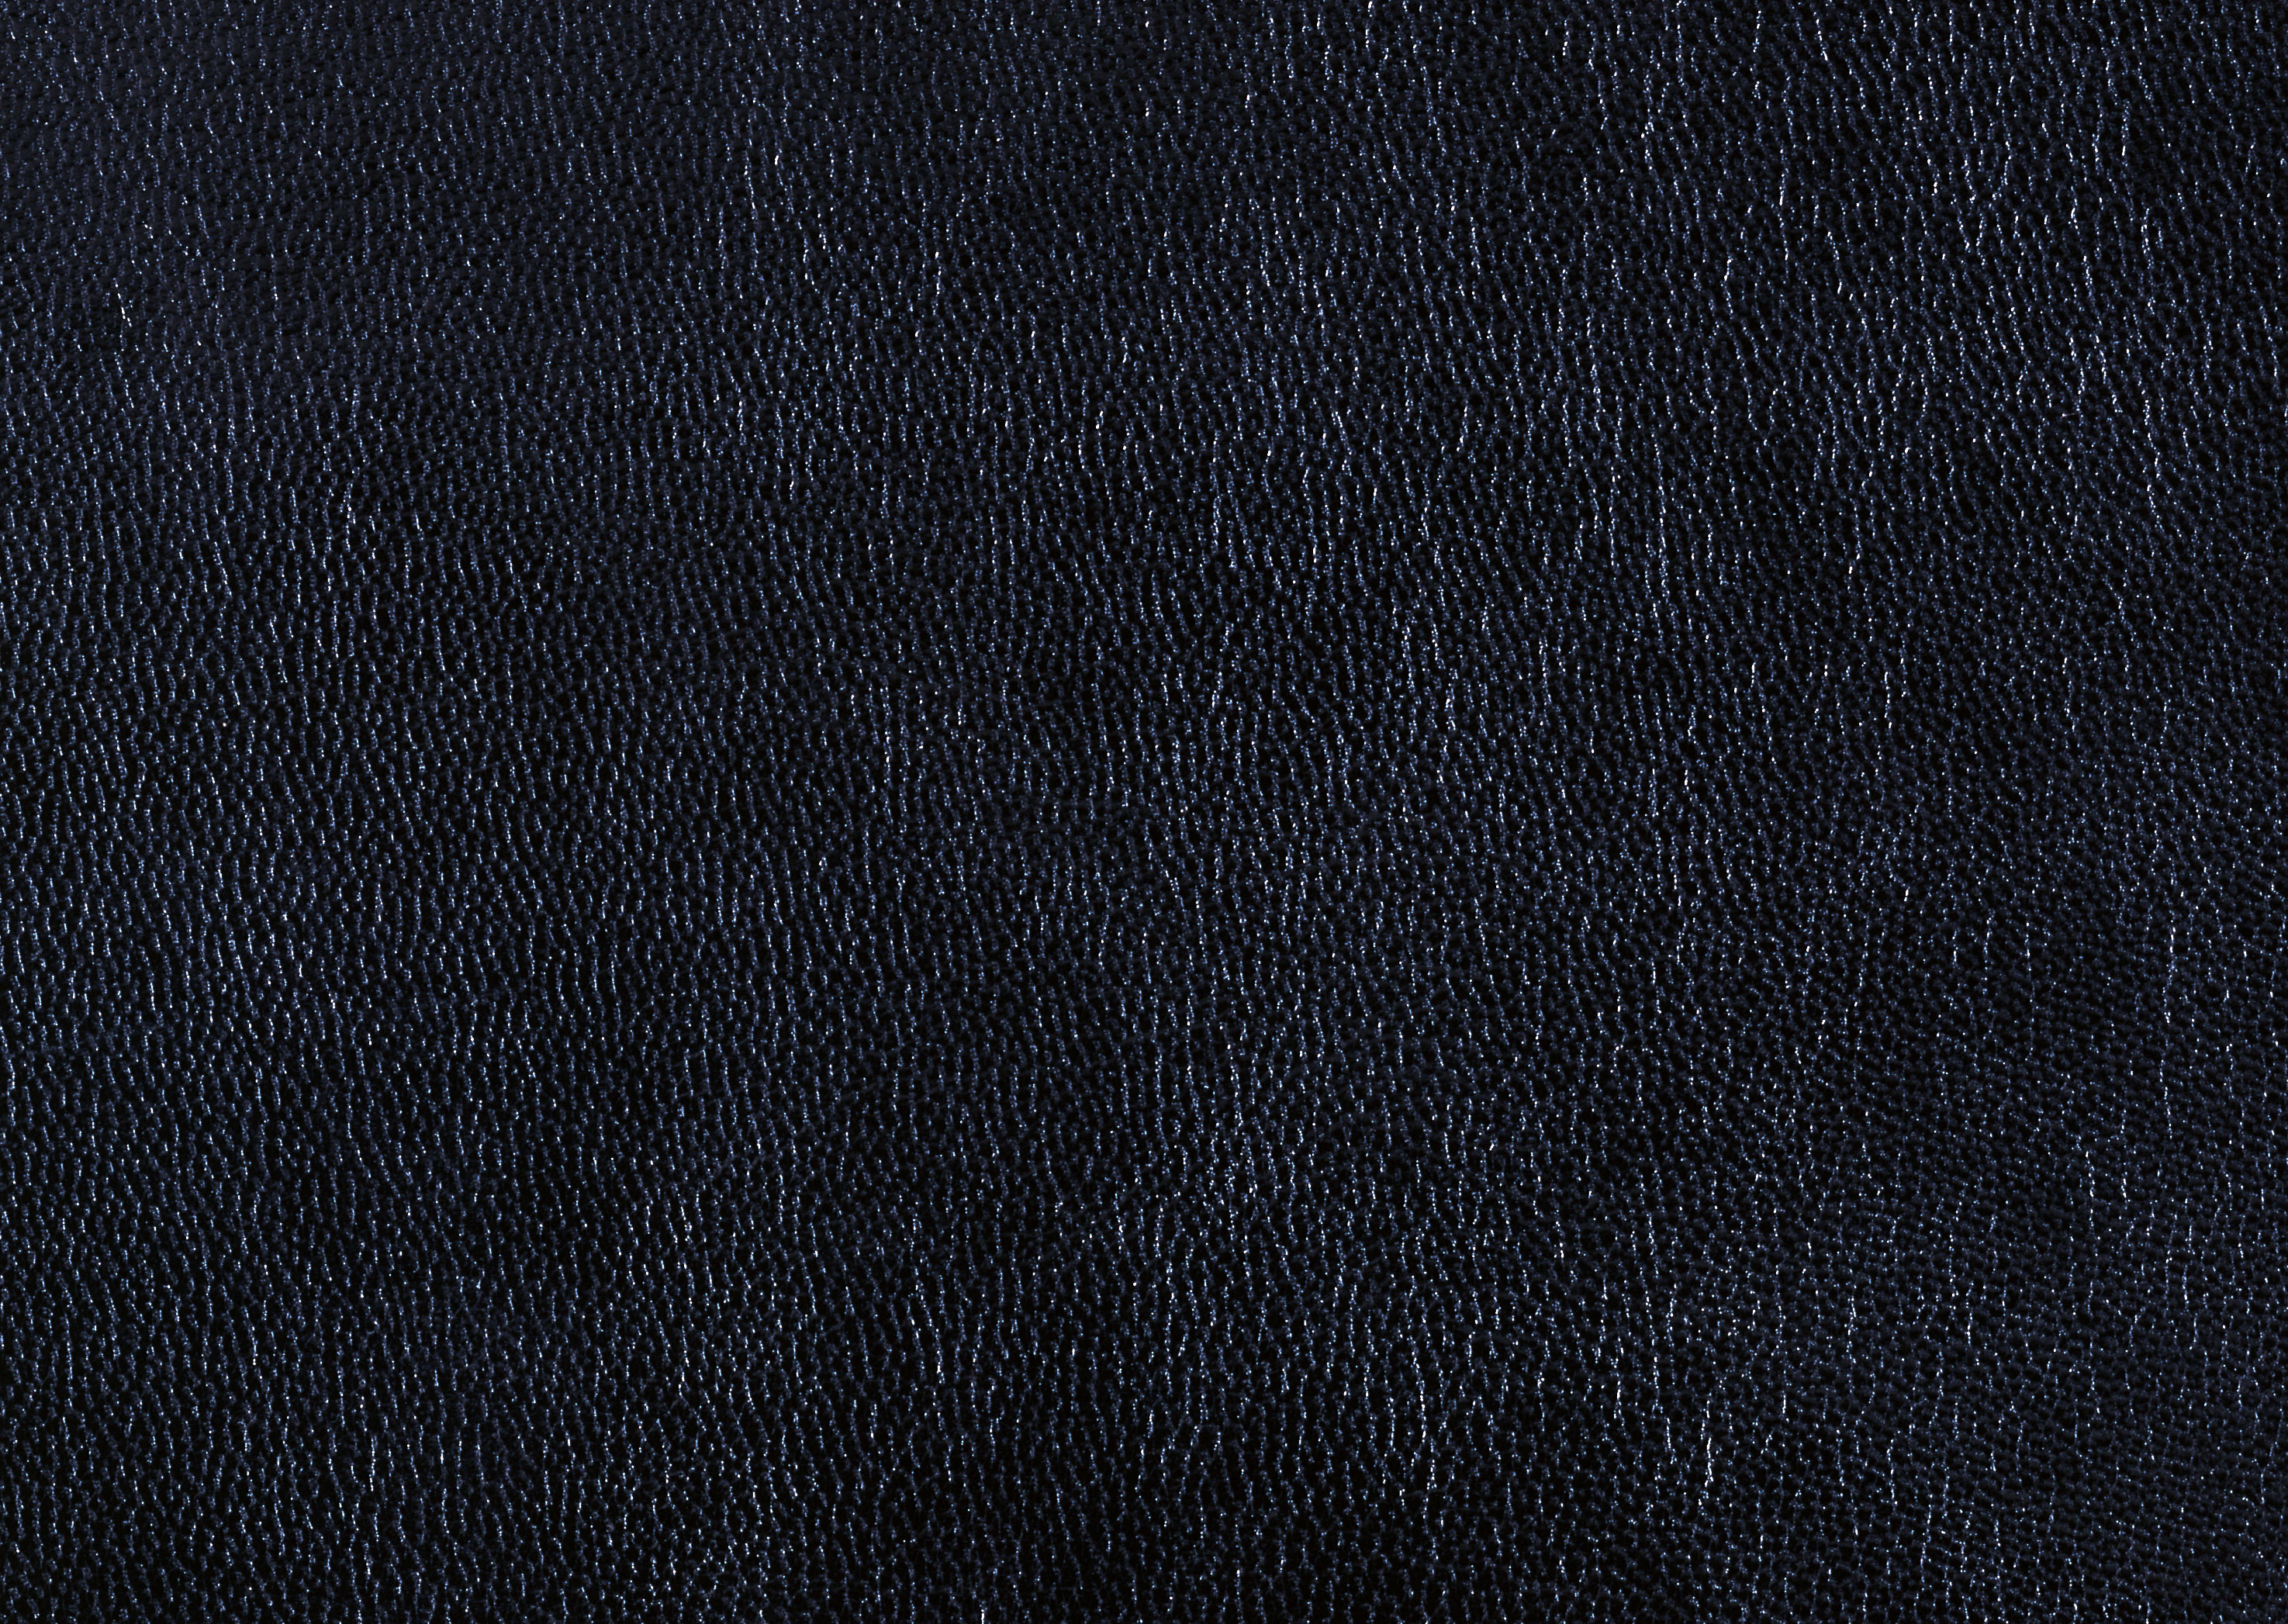 Black leather texture background image free download for Texture background free download